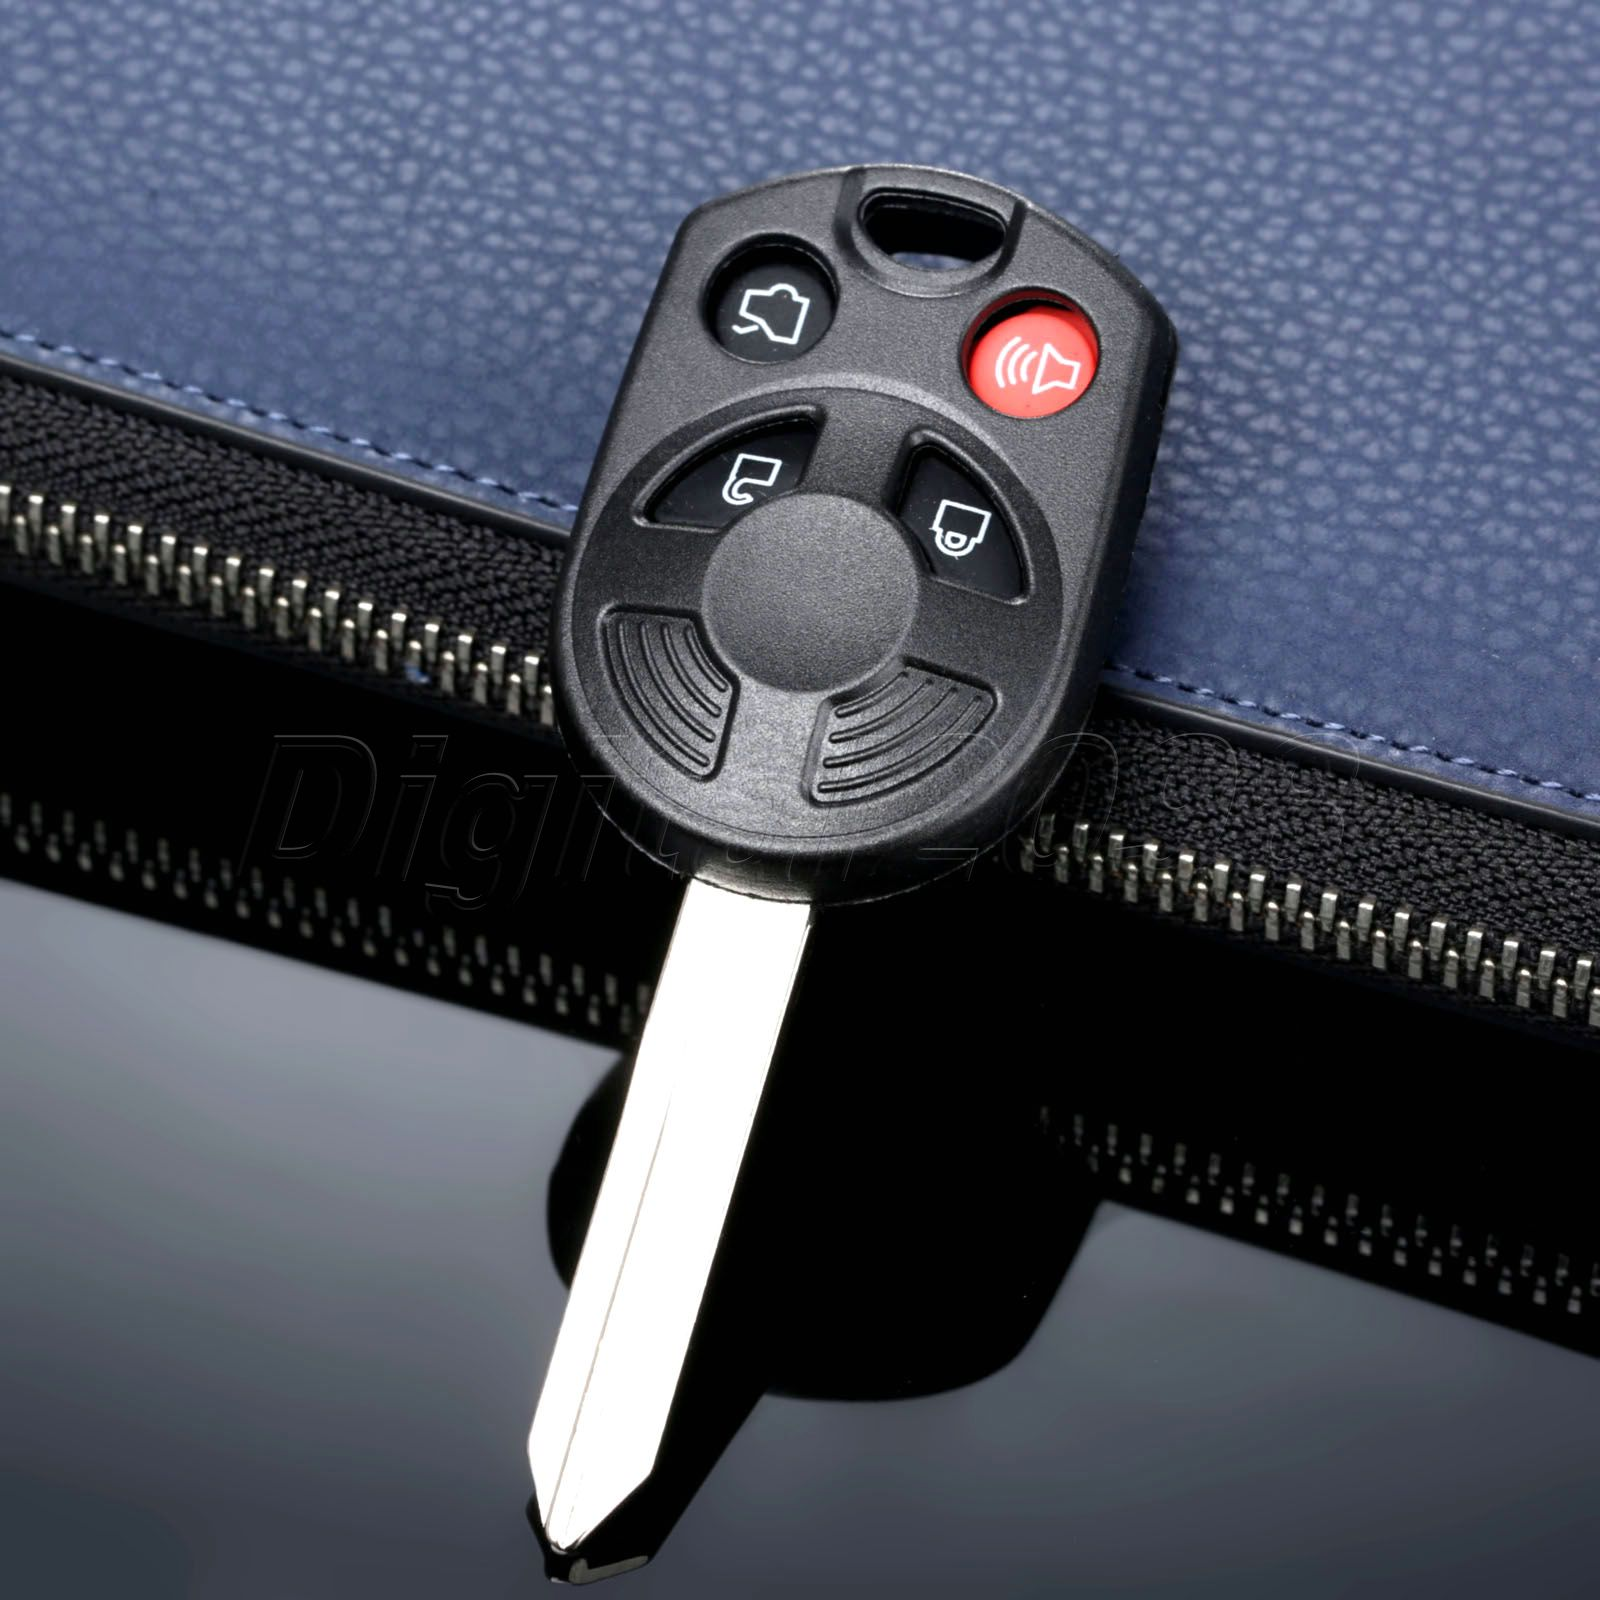 Yetaha new 4 button remote key shell case keyless entry fob uncut for ford escape expedition